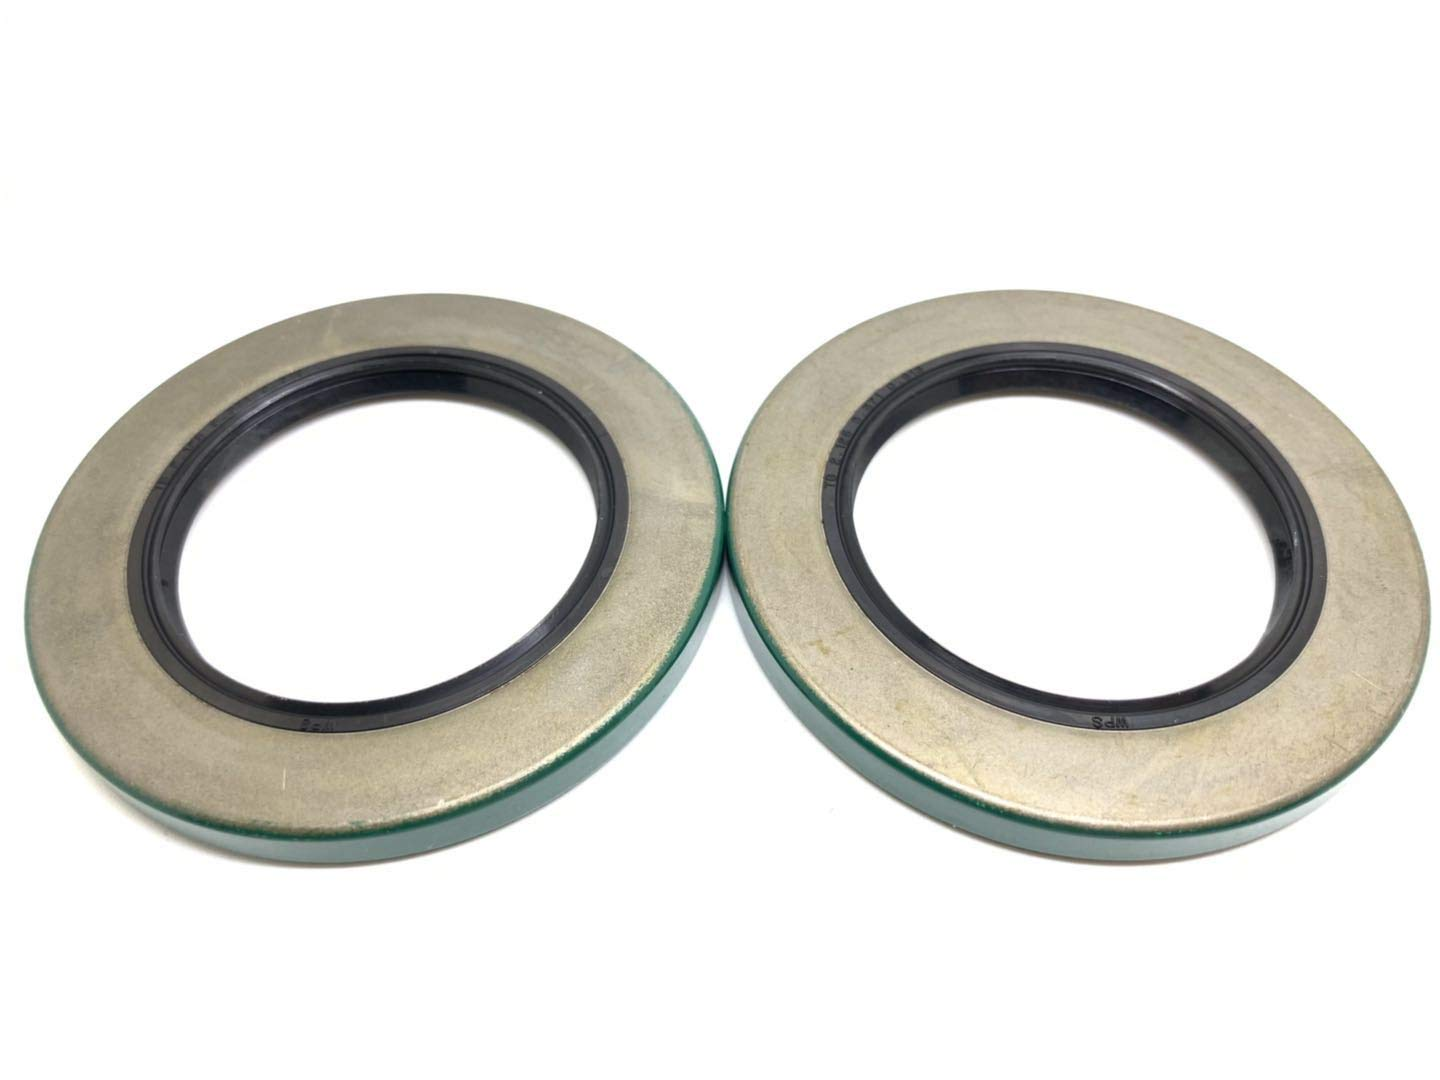 WPS Trailer Hub Wheel Grease Seal 10-10 for 5200-7000# Axles 2.125 X 3.376 21333TB Pack of 2